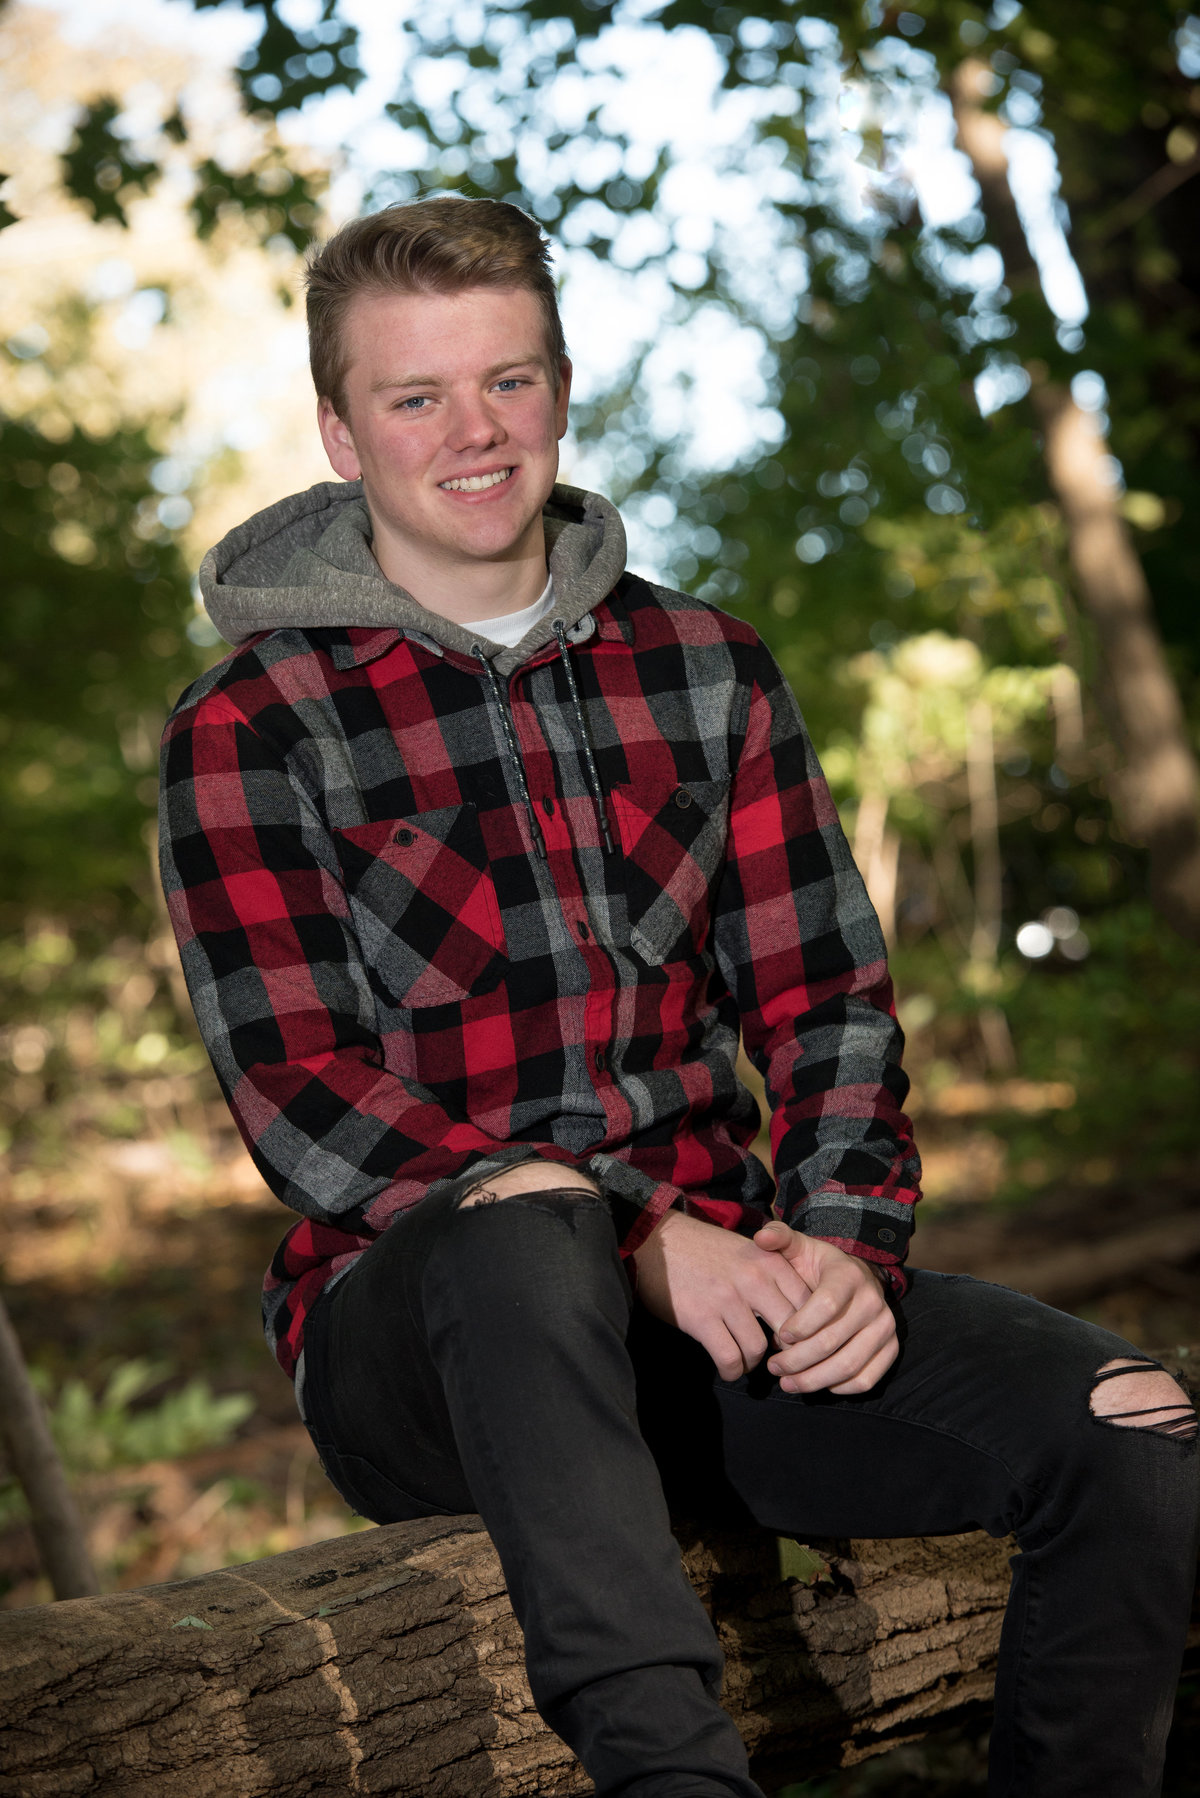 red-oak-nature-center-log-senior-portrait-North Aurora-Illinois